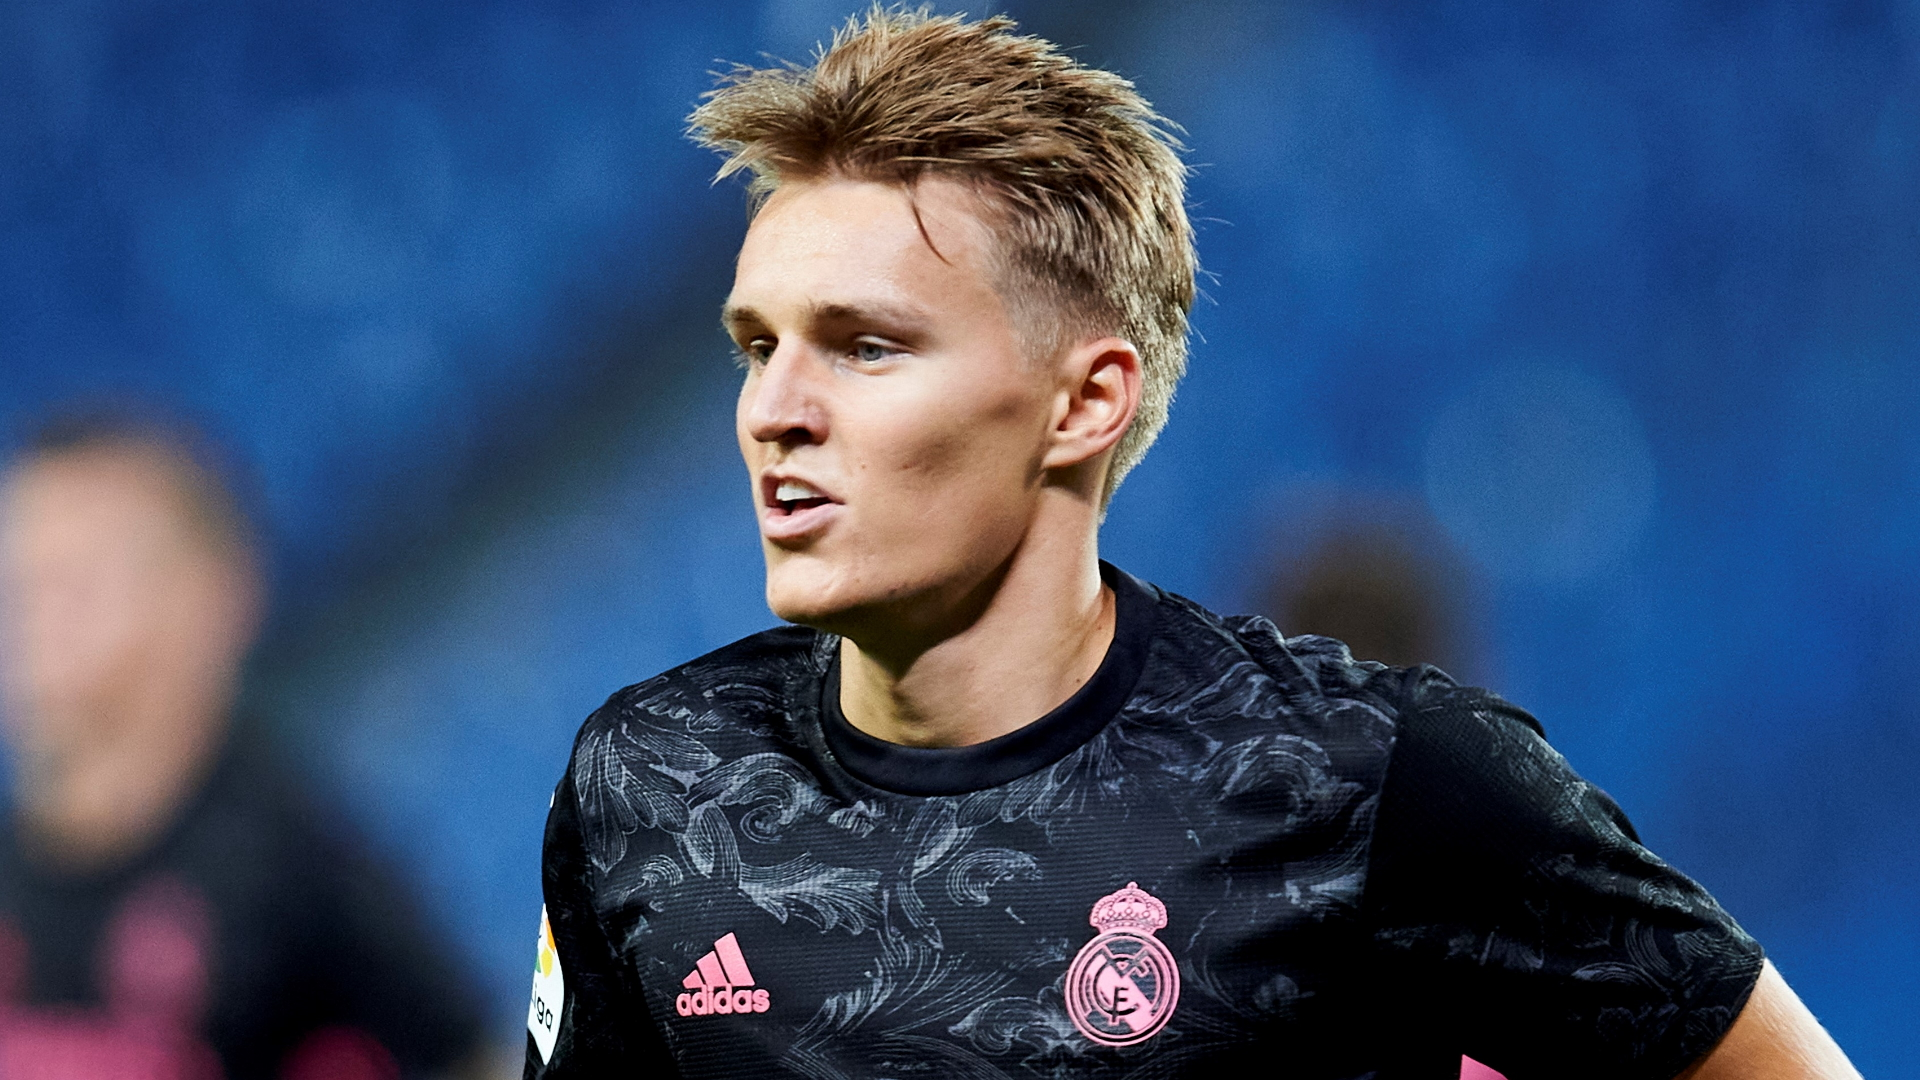 Guardiola wanted to make Odegaard 'the best player in the world' as Bayern & Liverpool missed out to Real Madrid